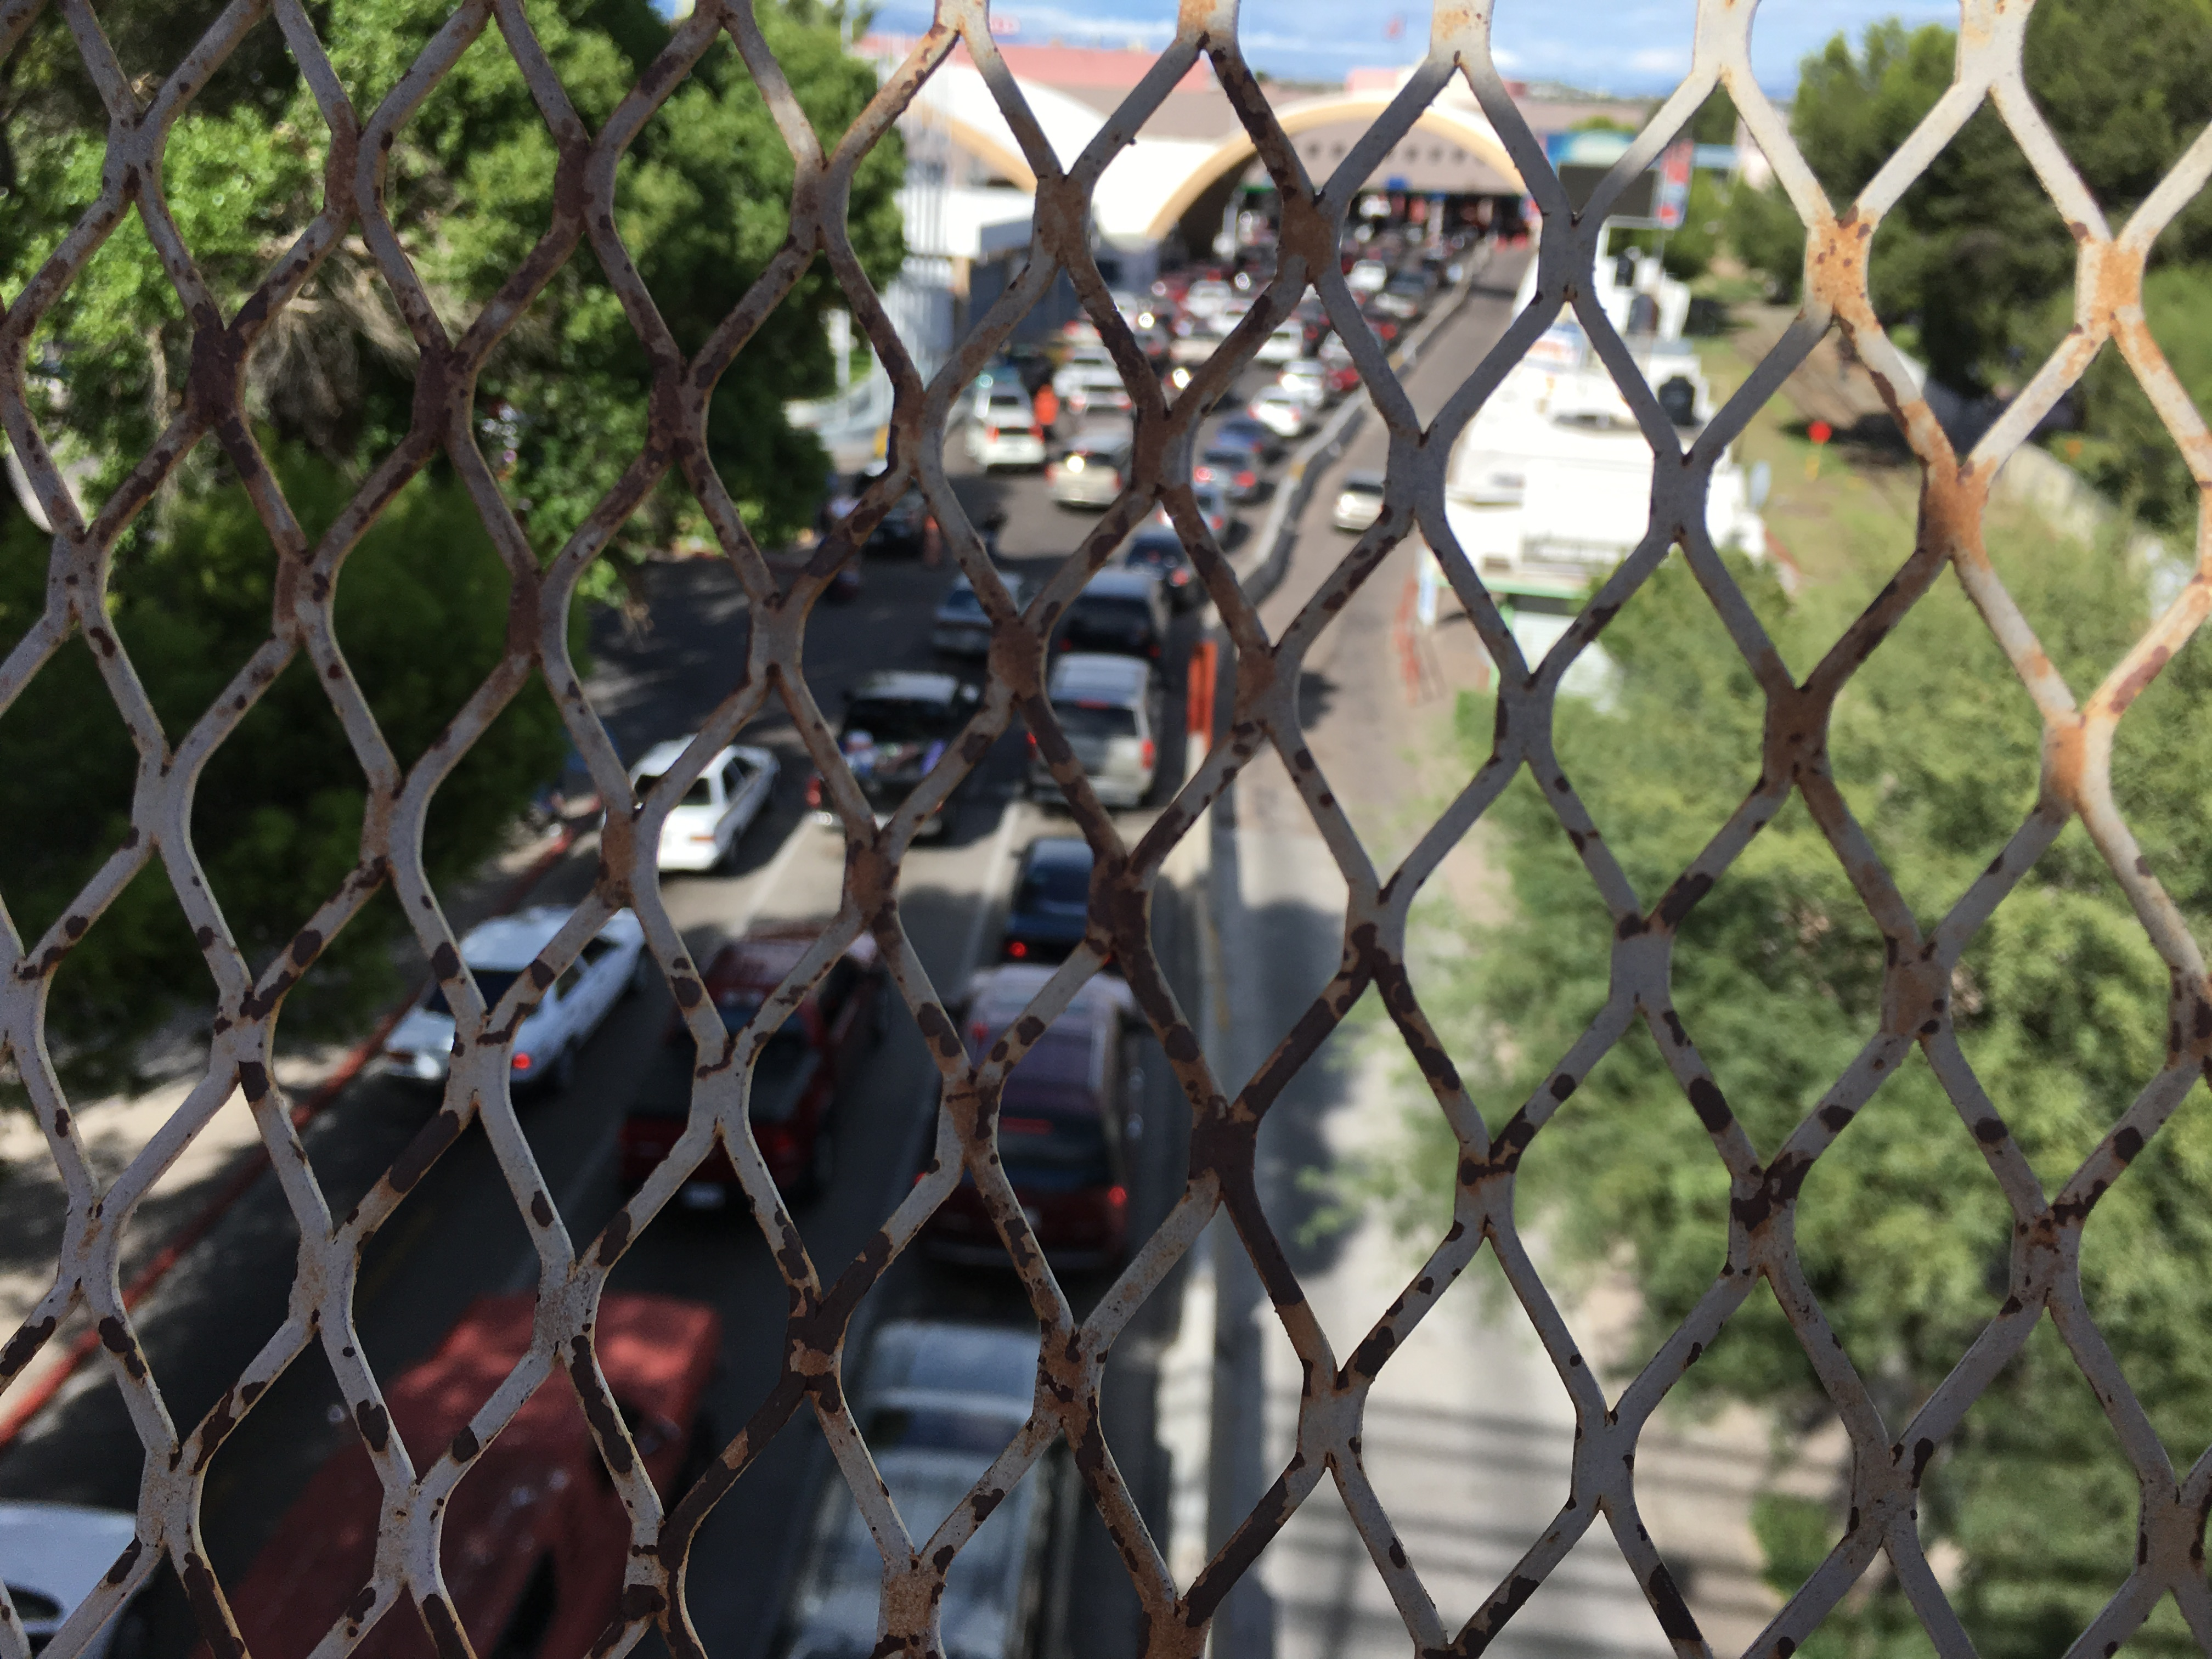 The view from Mexico to the US at the Nogales point of entry.